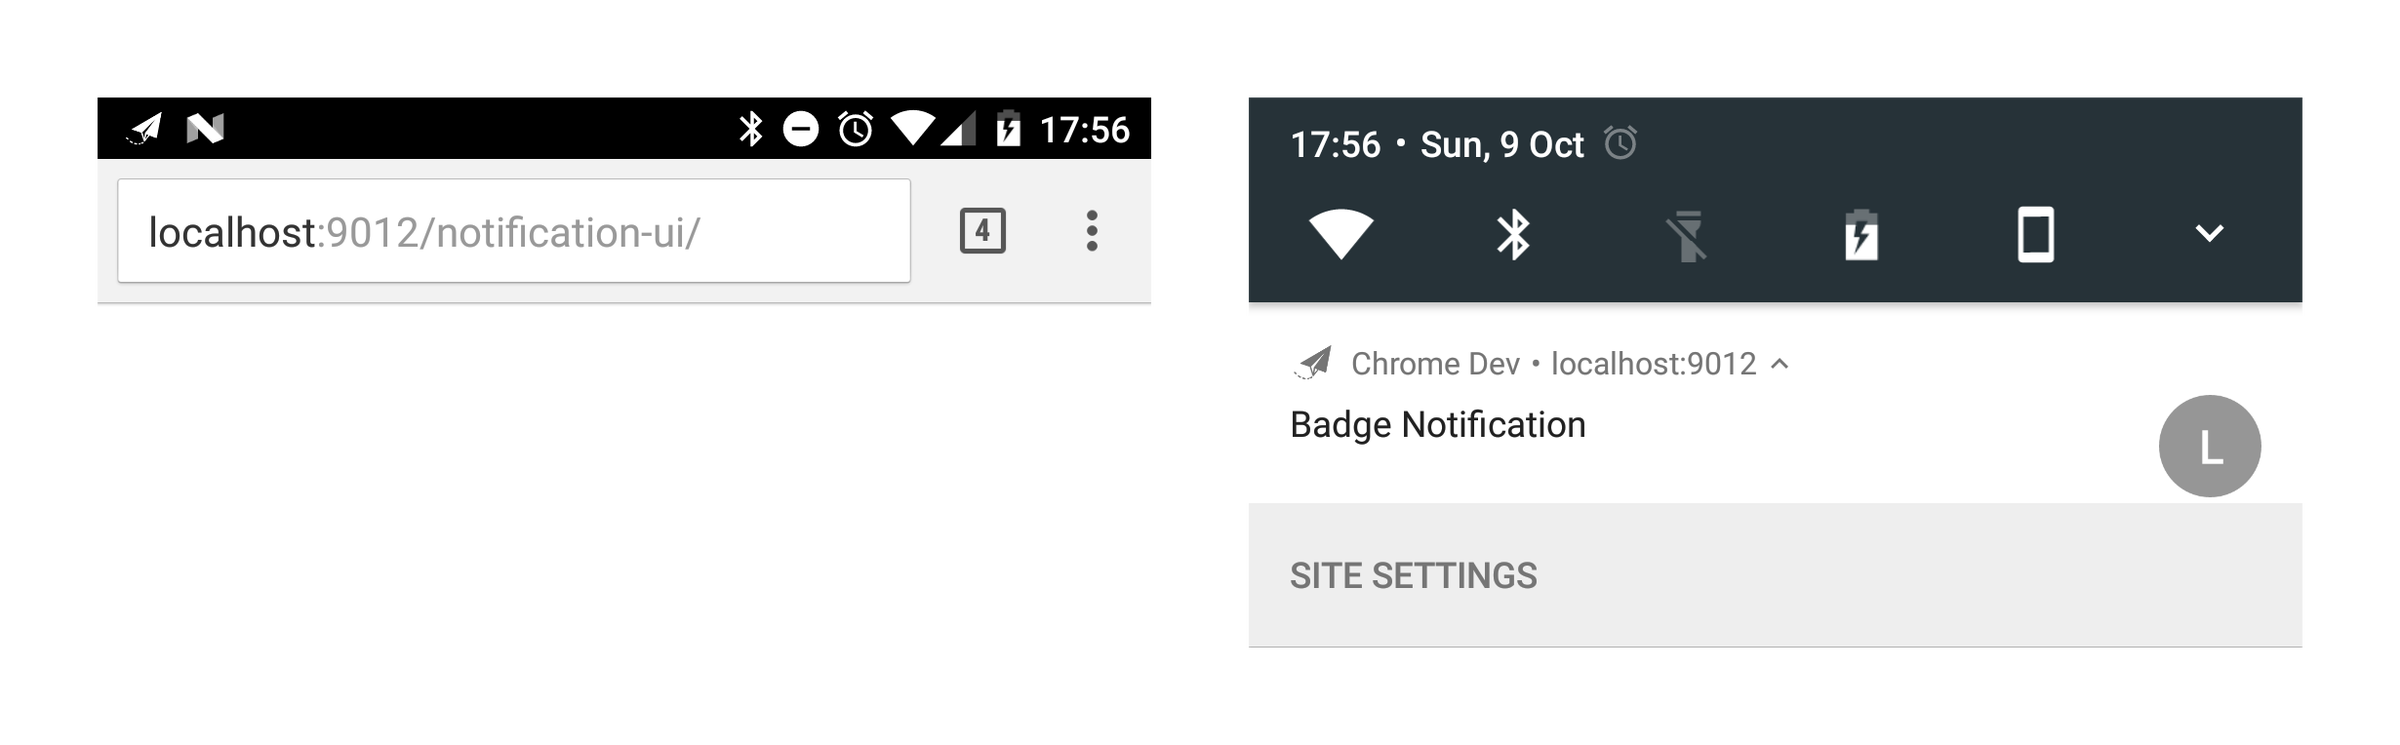 Notification with badge on Chrome for Android.